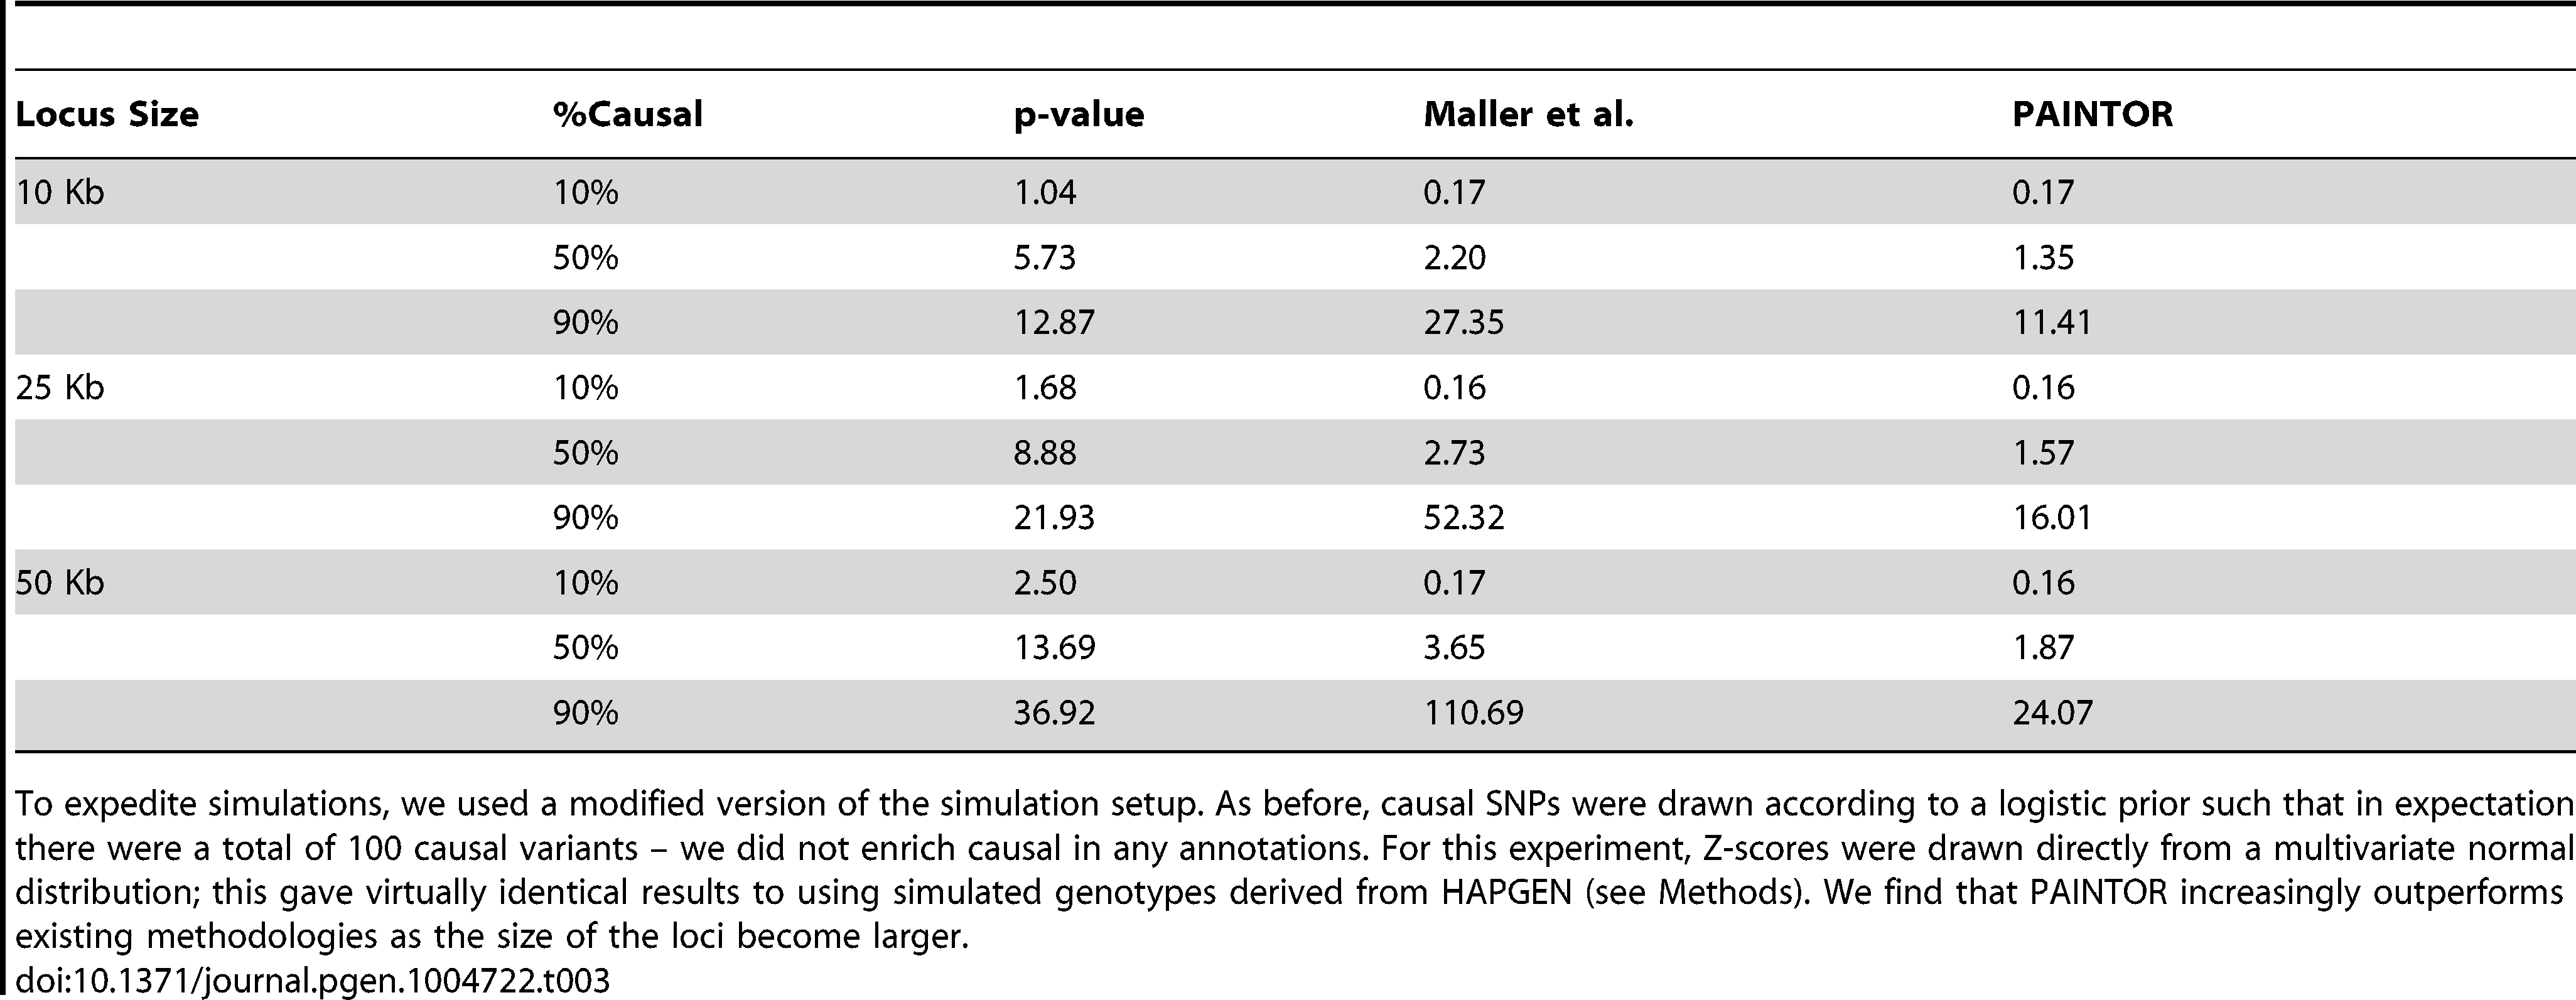 Performance of PAINTOR compared to standard methodologies at variable sized loci.